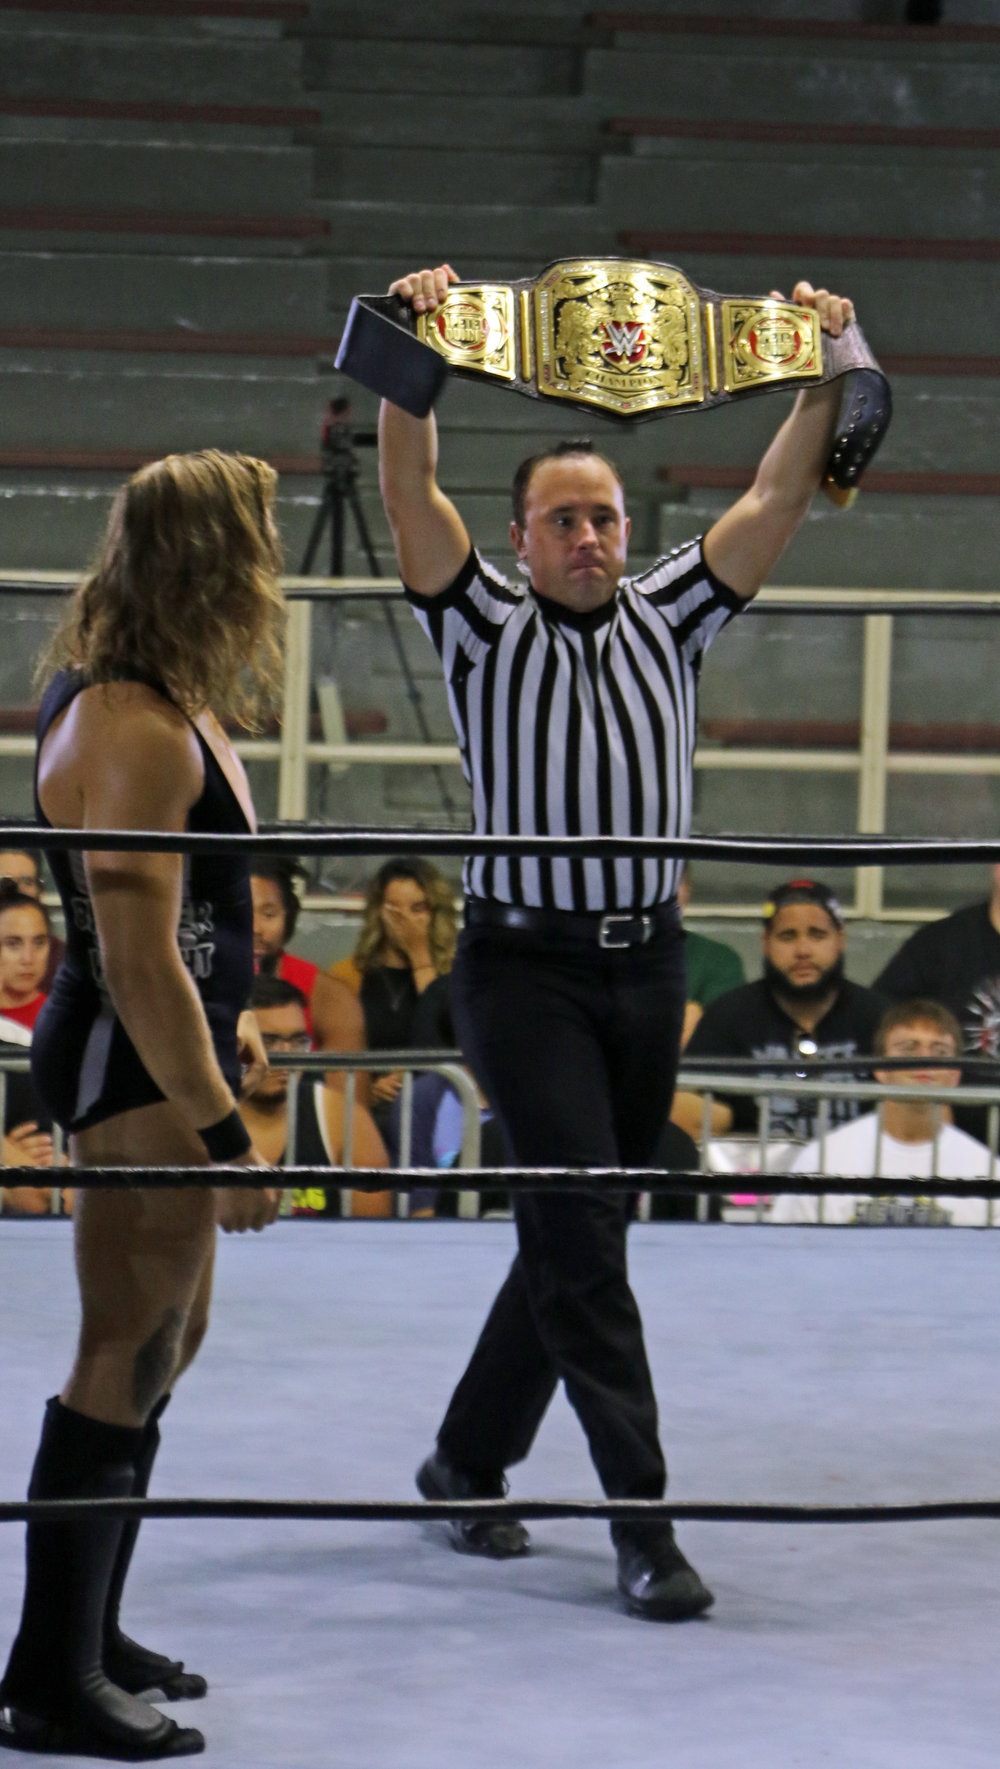 Pete Dunne, left, watches, as the referee holds up the WWE United Kingdom Championship before the bout against Flash Morgan Webster.